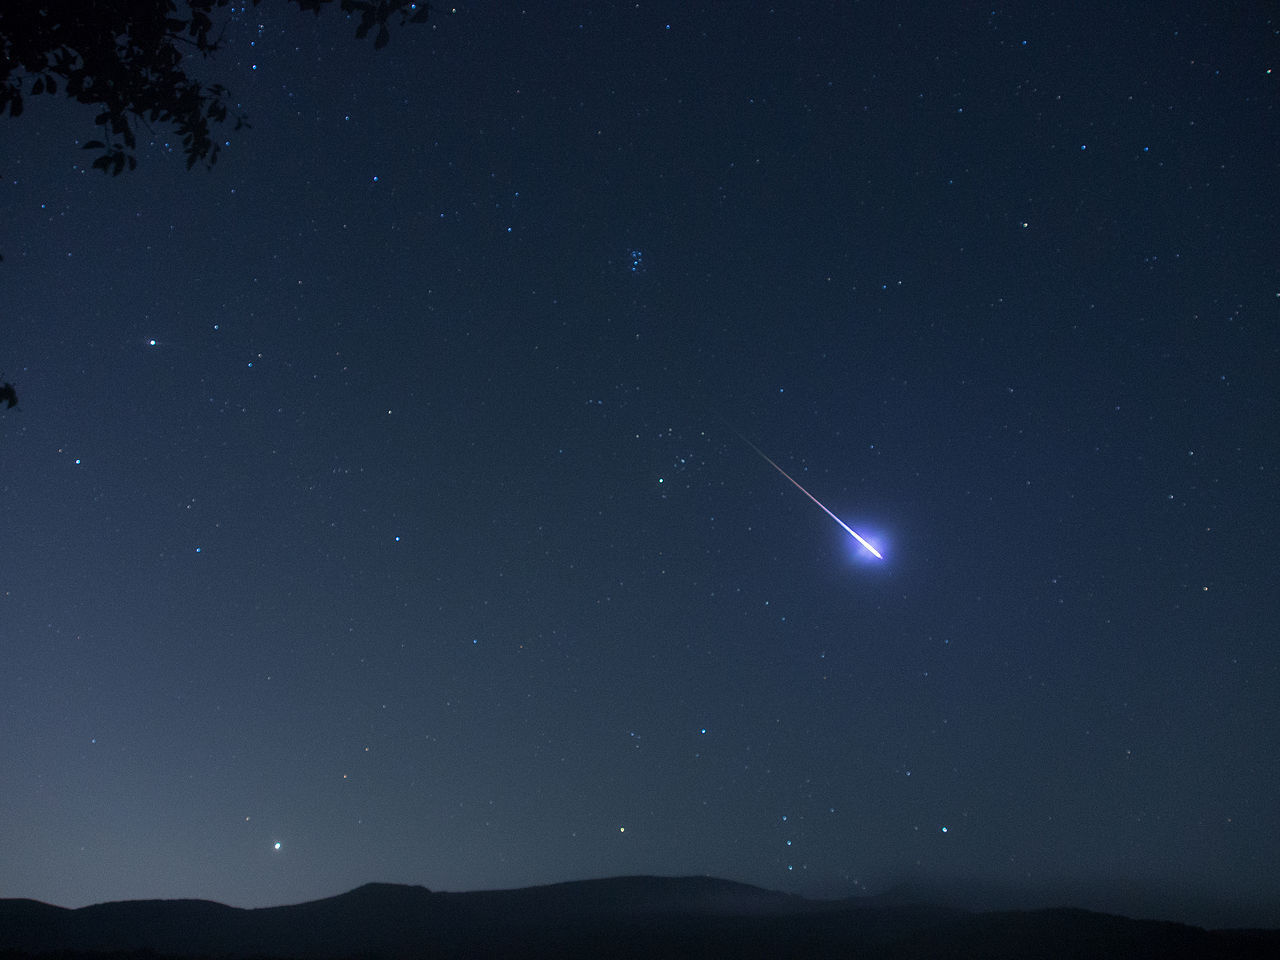 Falling Stars Gif Wallpaper Look Up Watch The Perseid Meteor Showers At This Star